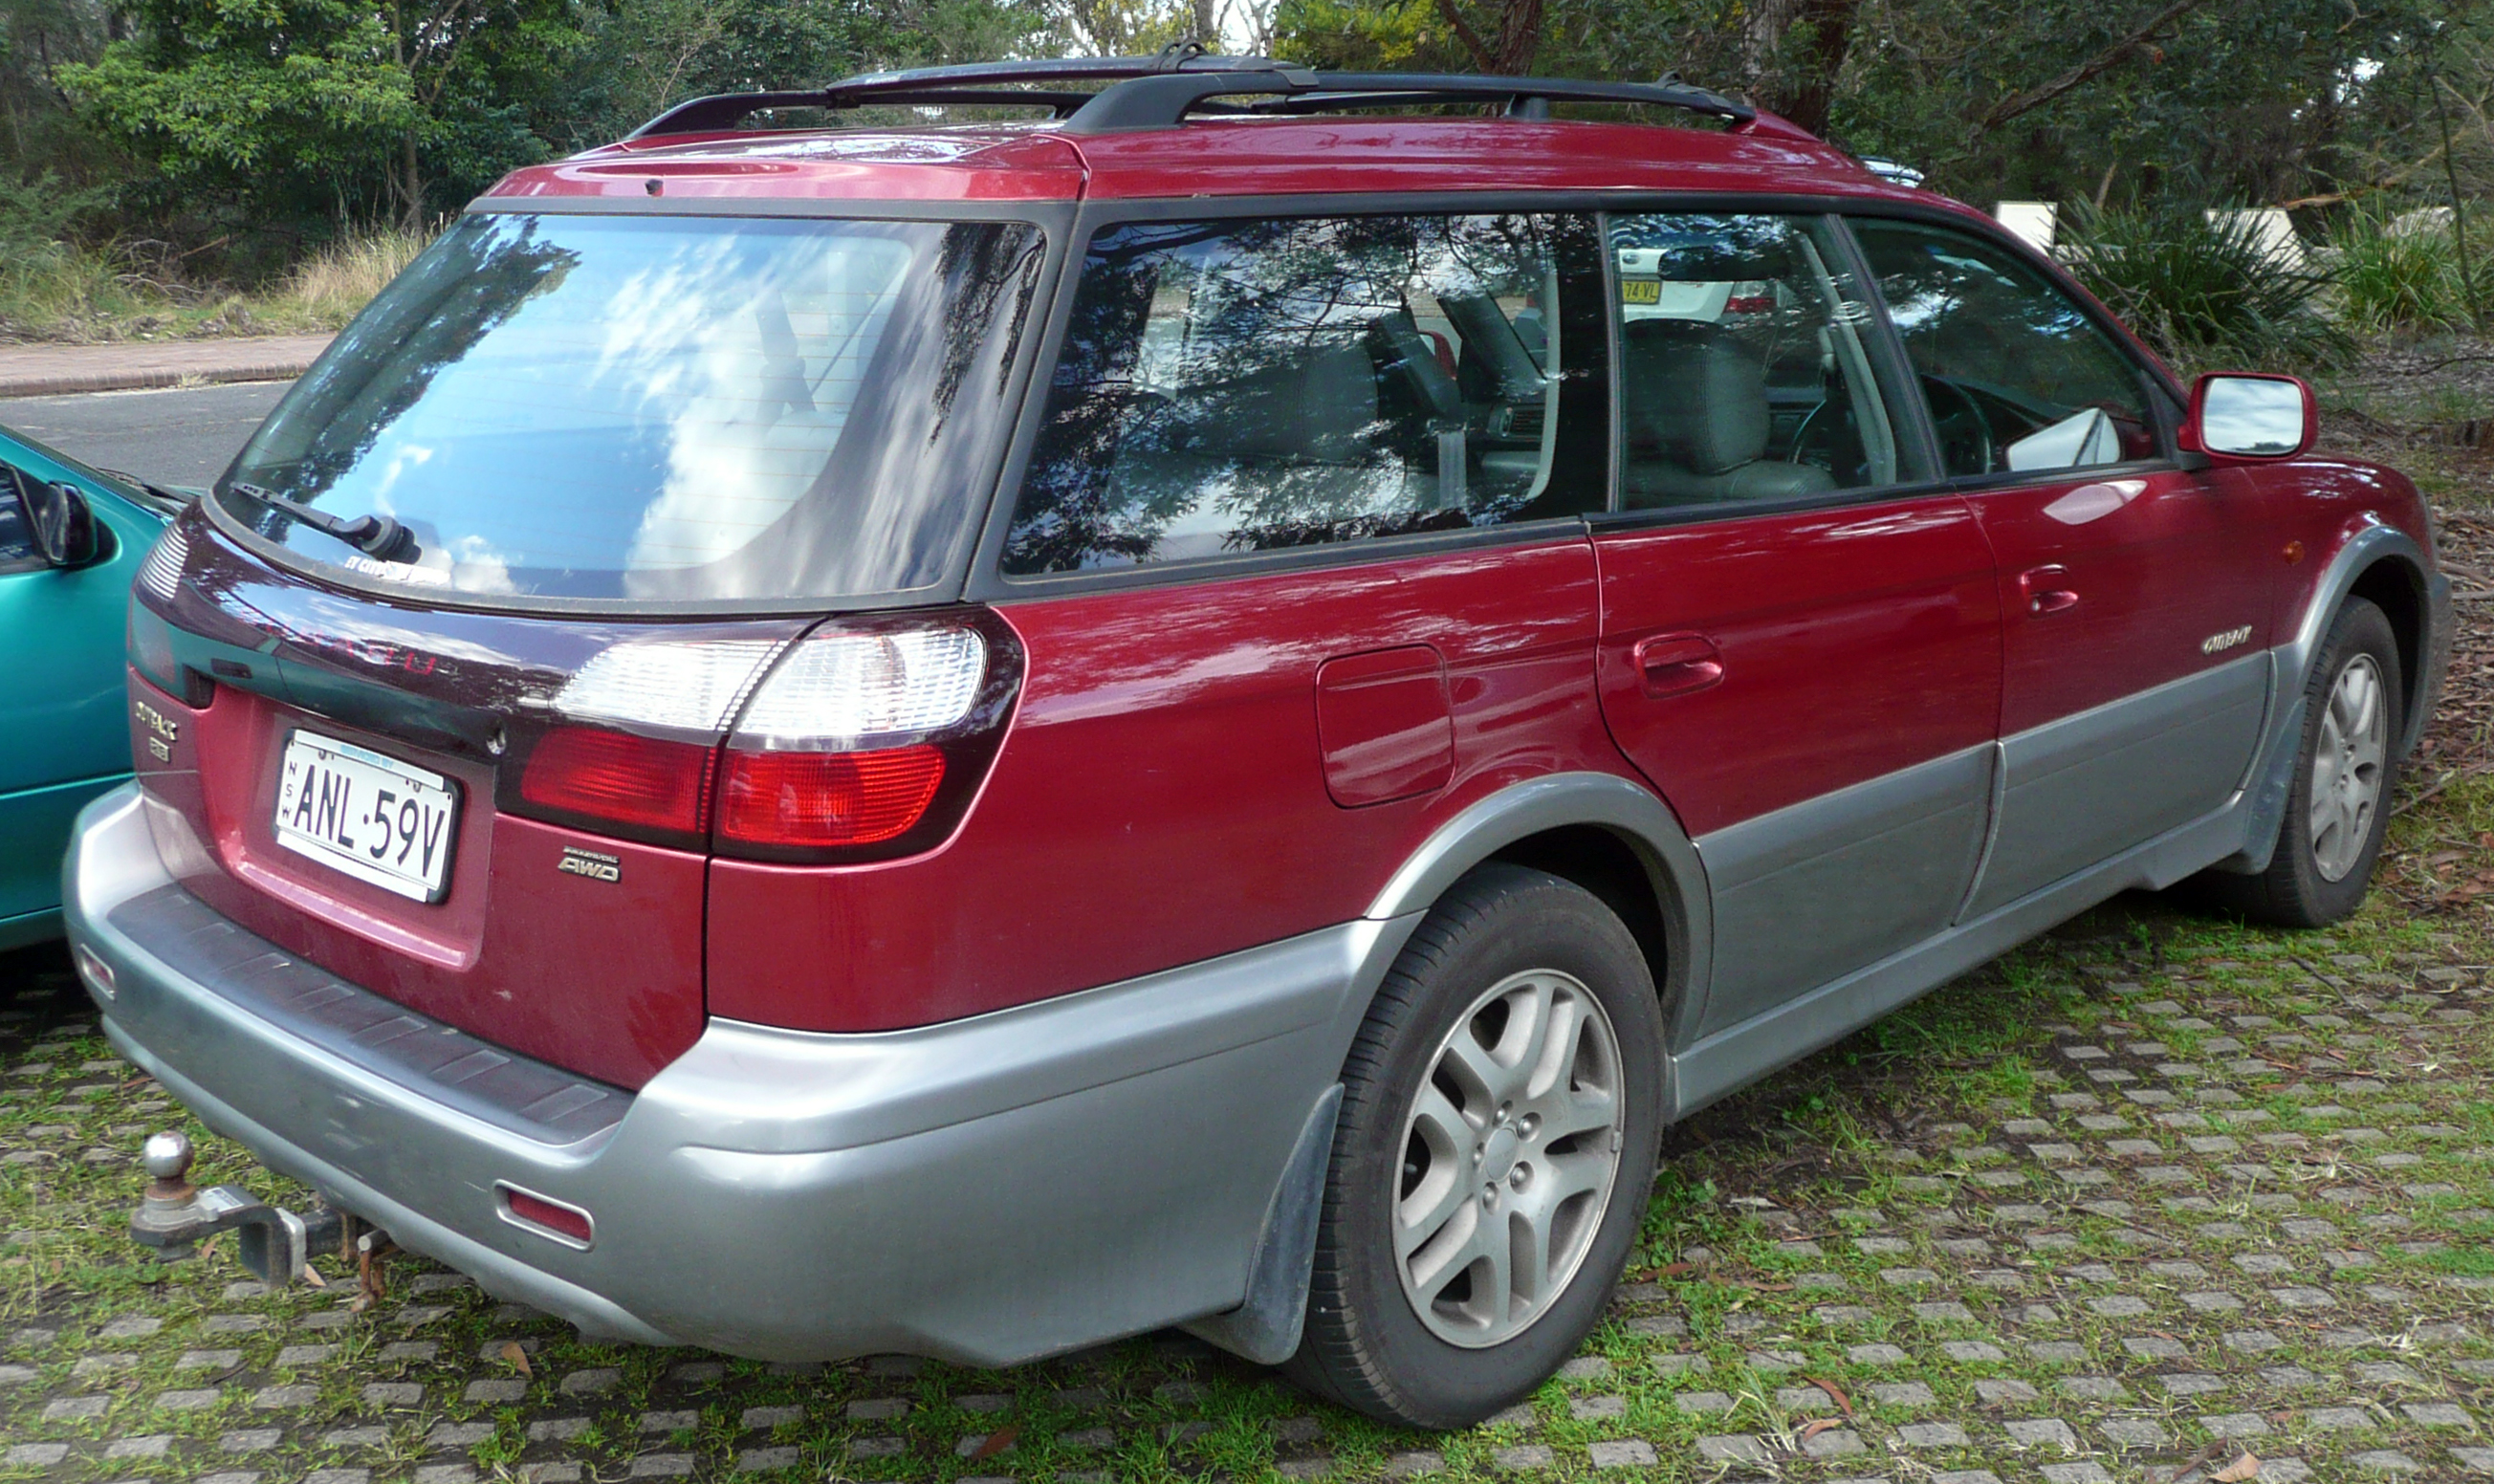 File2003 subaru outback bh9 my03 luxury station wagon 2009 07 file2003 subaru outback bh9 my03 luxury station wagon 2009 07 vanachro Image collections